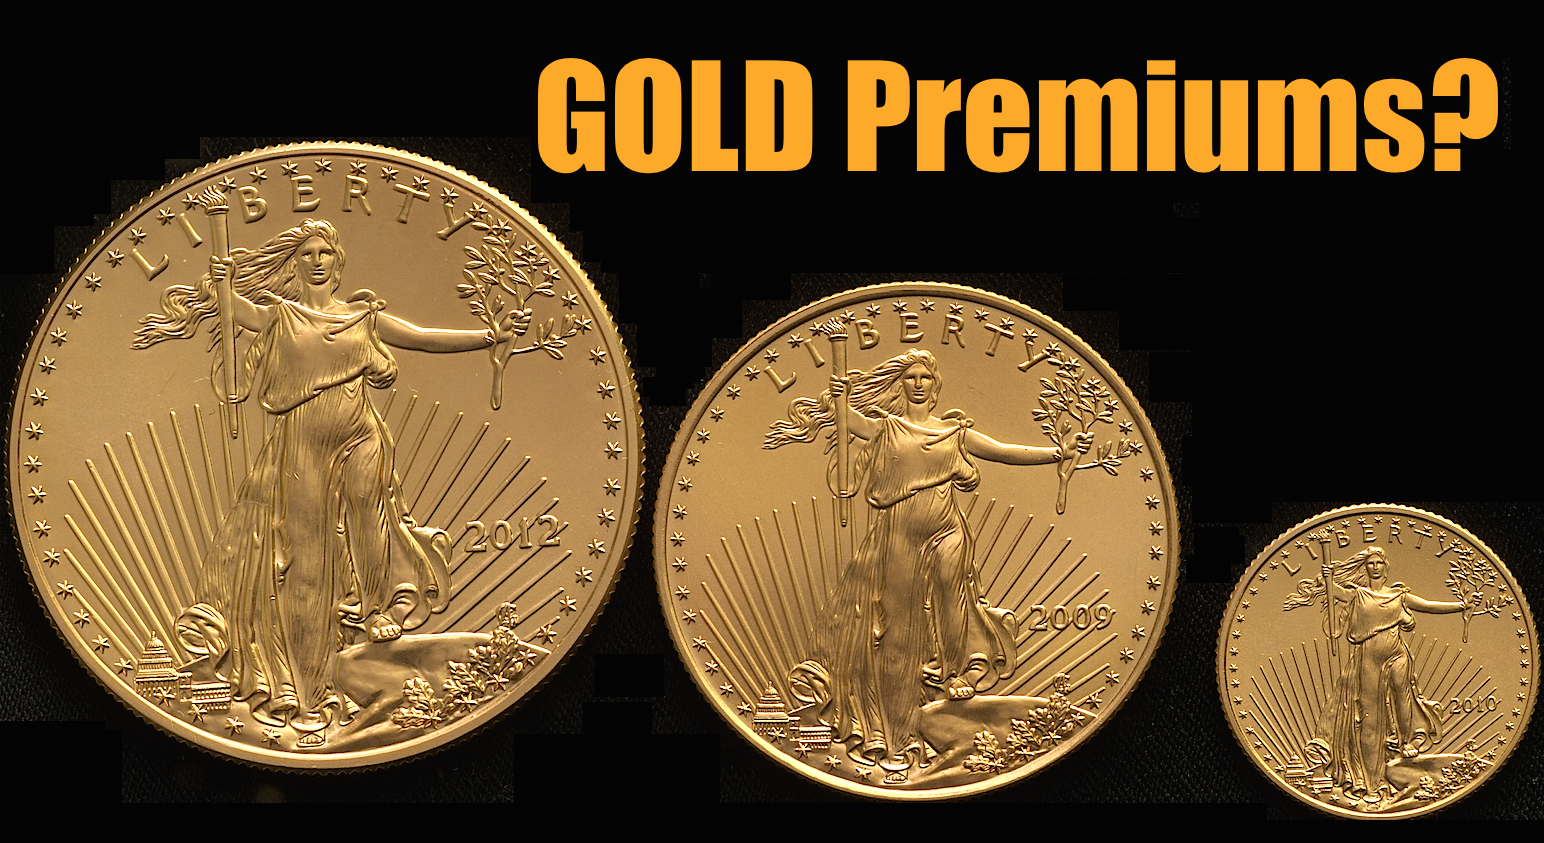 Gold Premiums? | Price Markups for Gold Bullion Products